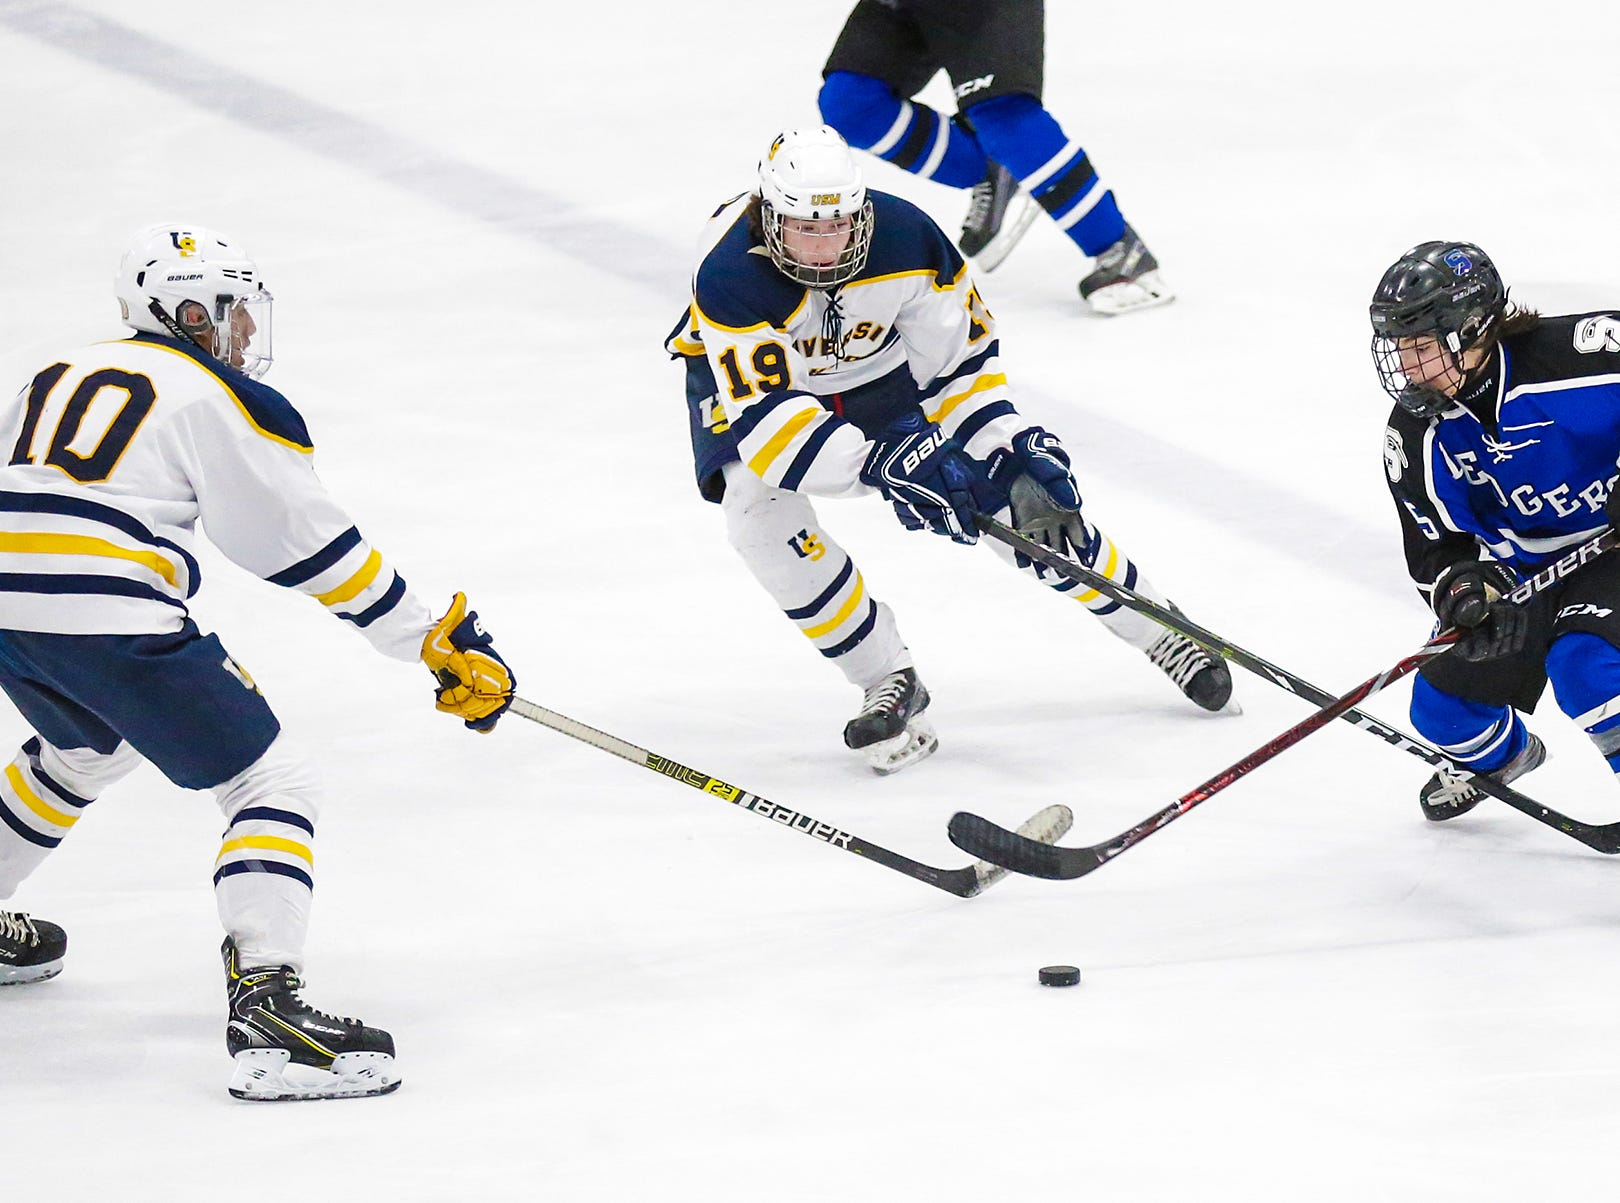 St. Mary's Springs boys co-op hockey's Brady Welsch (5) tries to keep the puck away from University School of Milwaukee's Ethan Ford (10) and Carson Mogush (19) Friday, February 22, 2019 during their WIAA sectional final game in Fond du Lac. University School won the game 6-1 and will advance to state. Doug Raflik/USA TODAY NETWORK-Wisconsin